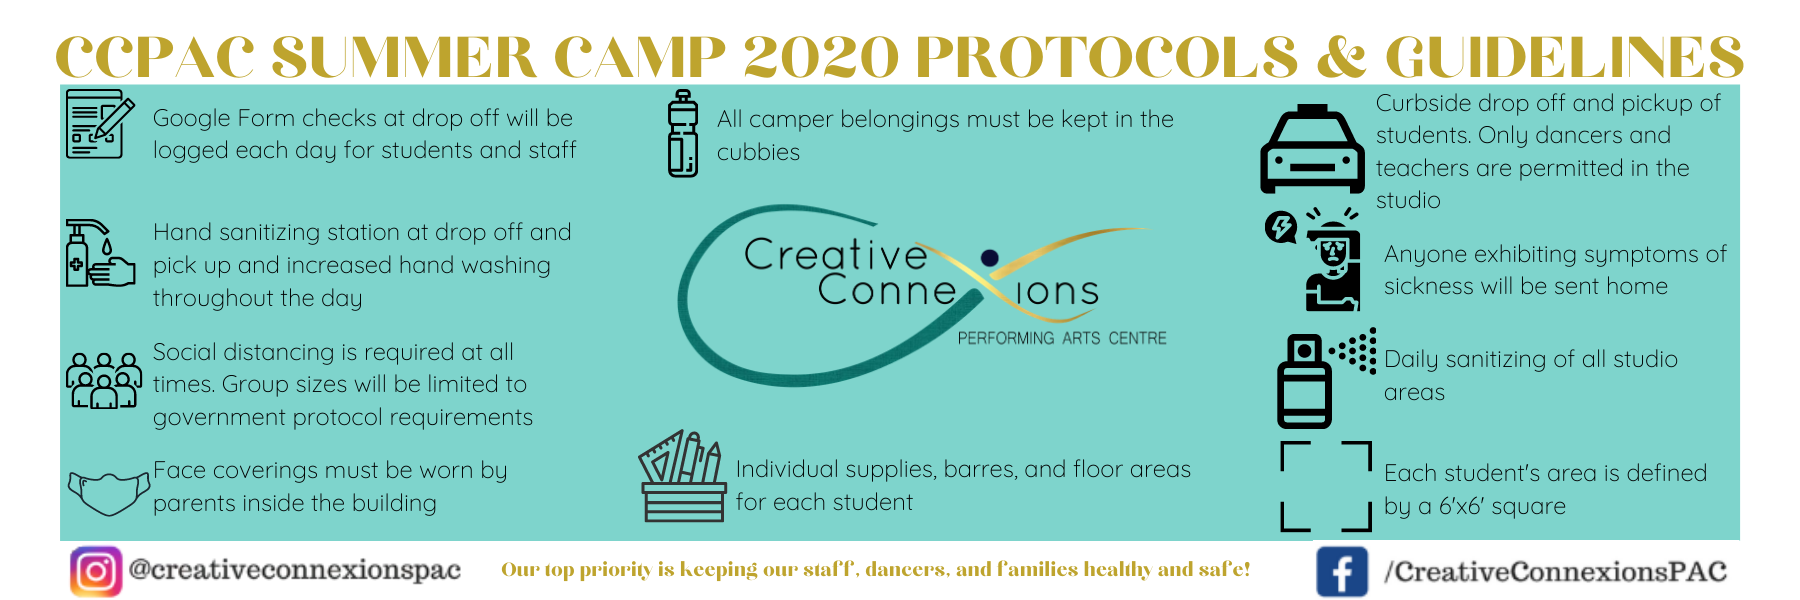 Copy of CCPAC SUMMER CAMP 2020 PROTOCOLS & GUIDELINES (1).png